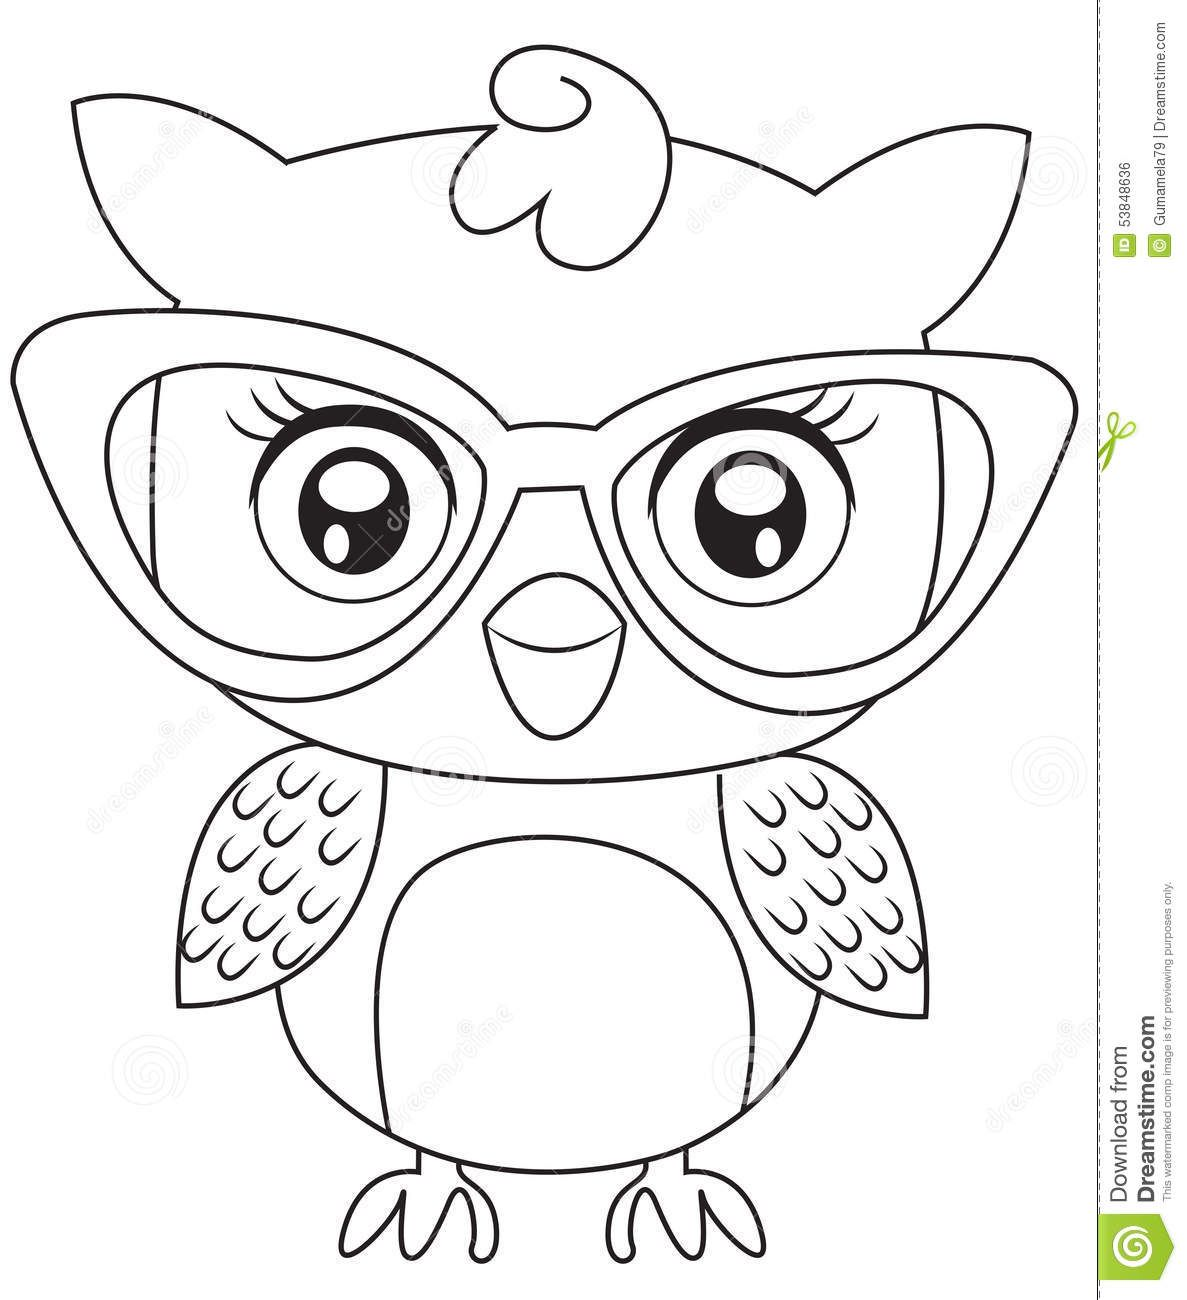 owl-eyeglasses-coloring-page-useful-as-book-kids-53848636